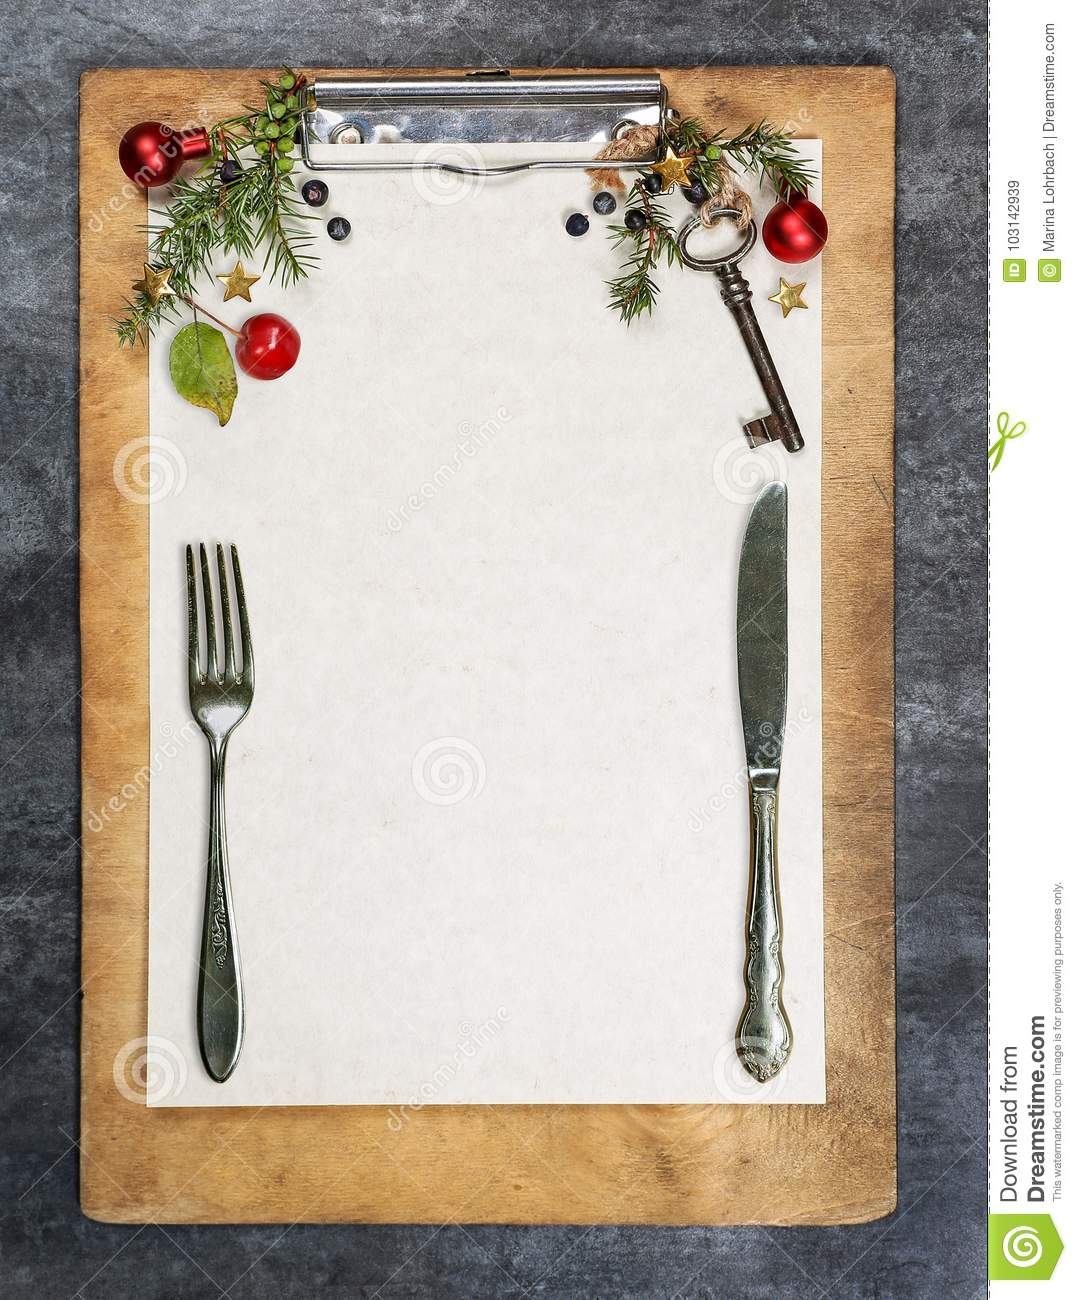 Clipboard With Paper, Copy Space Stock Image - Image of food, frame ...